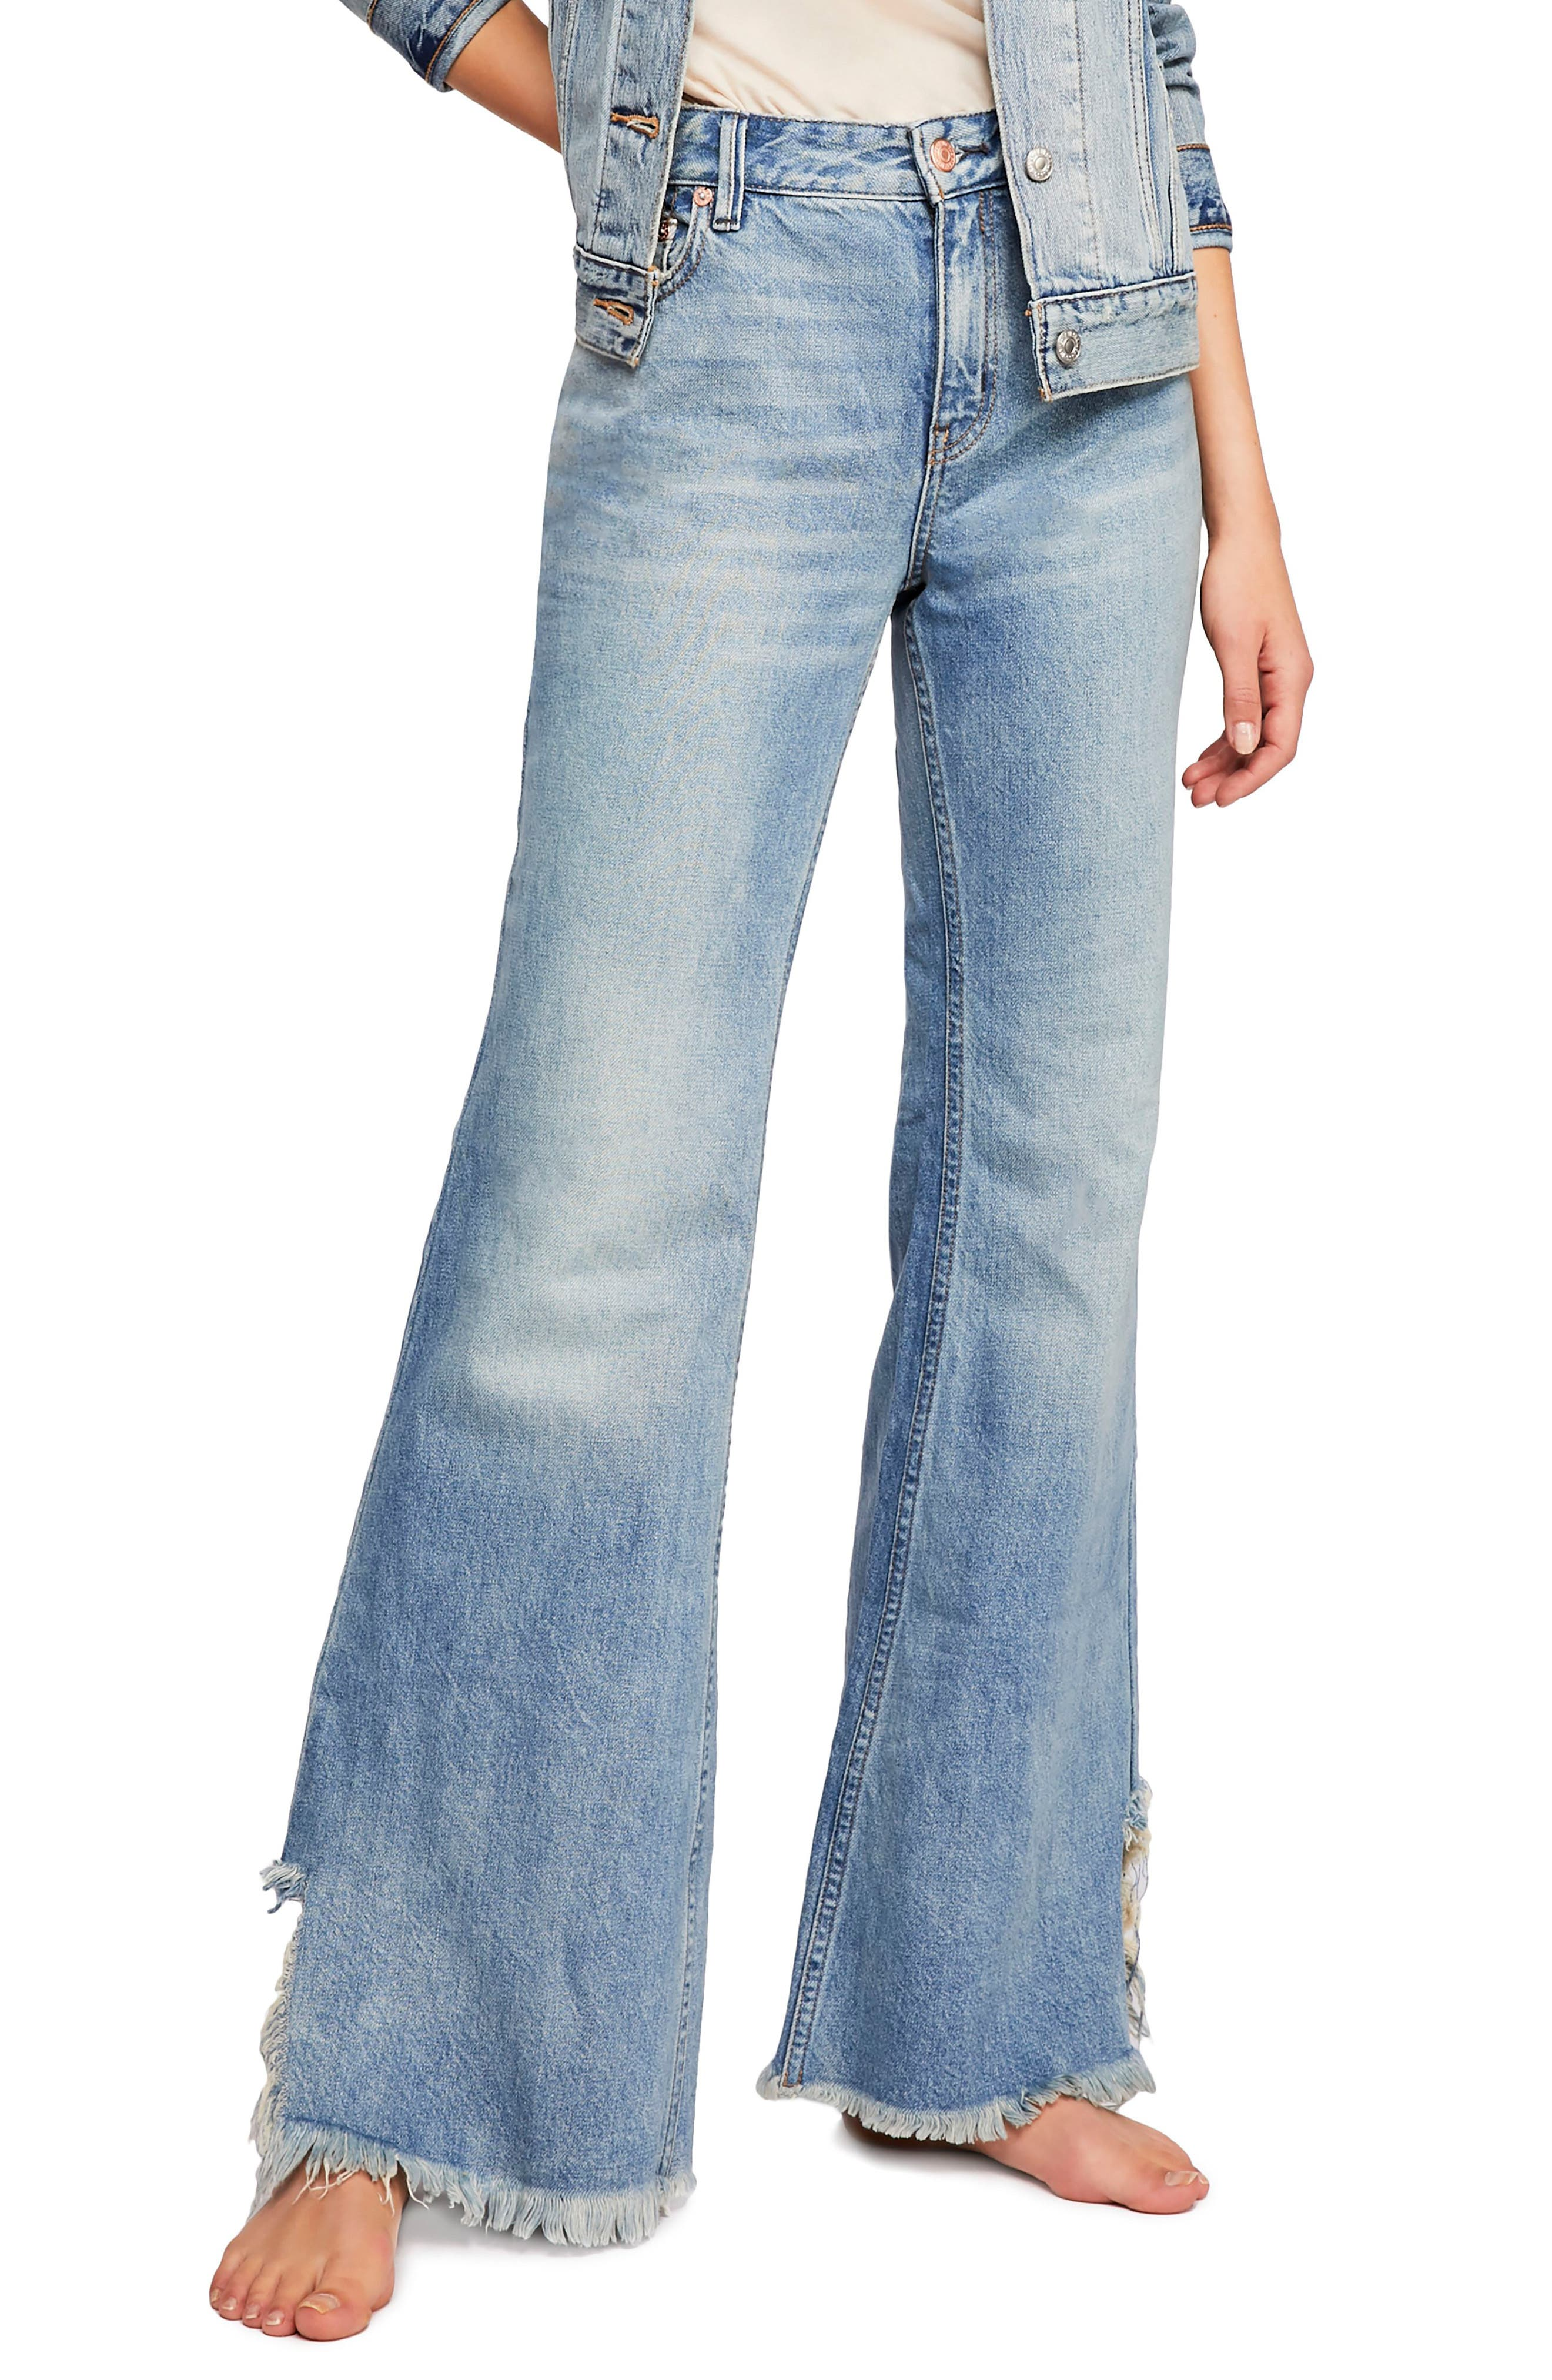 Vintage High Waisted Trousers, Sailor Pants, Jeans Womens Free People Vintage Flare Jeans $46.80 AT vintagedancer.com